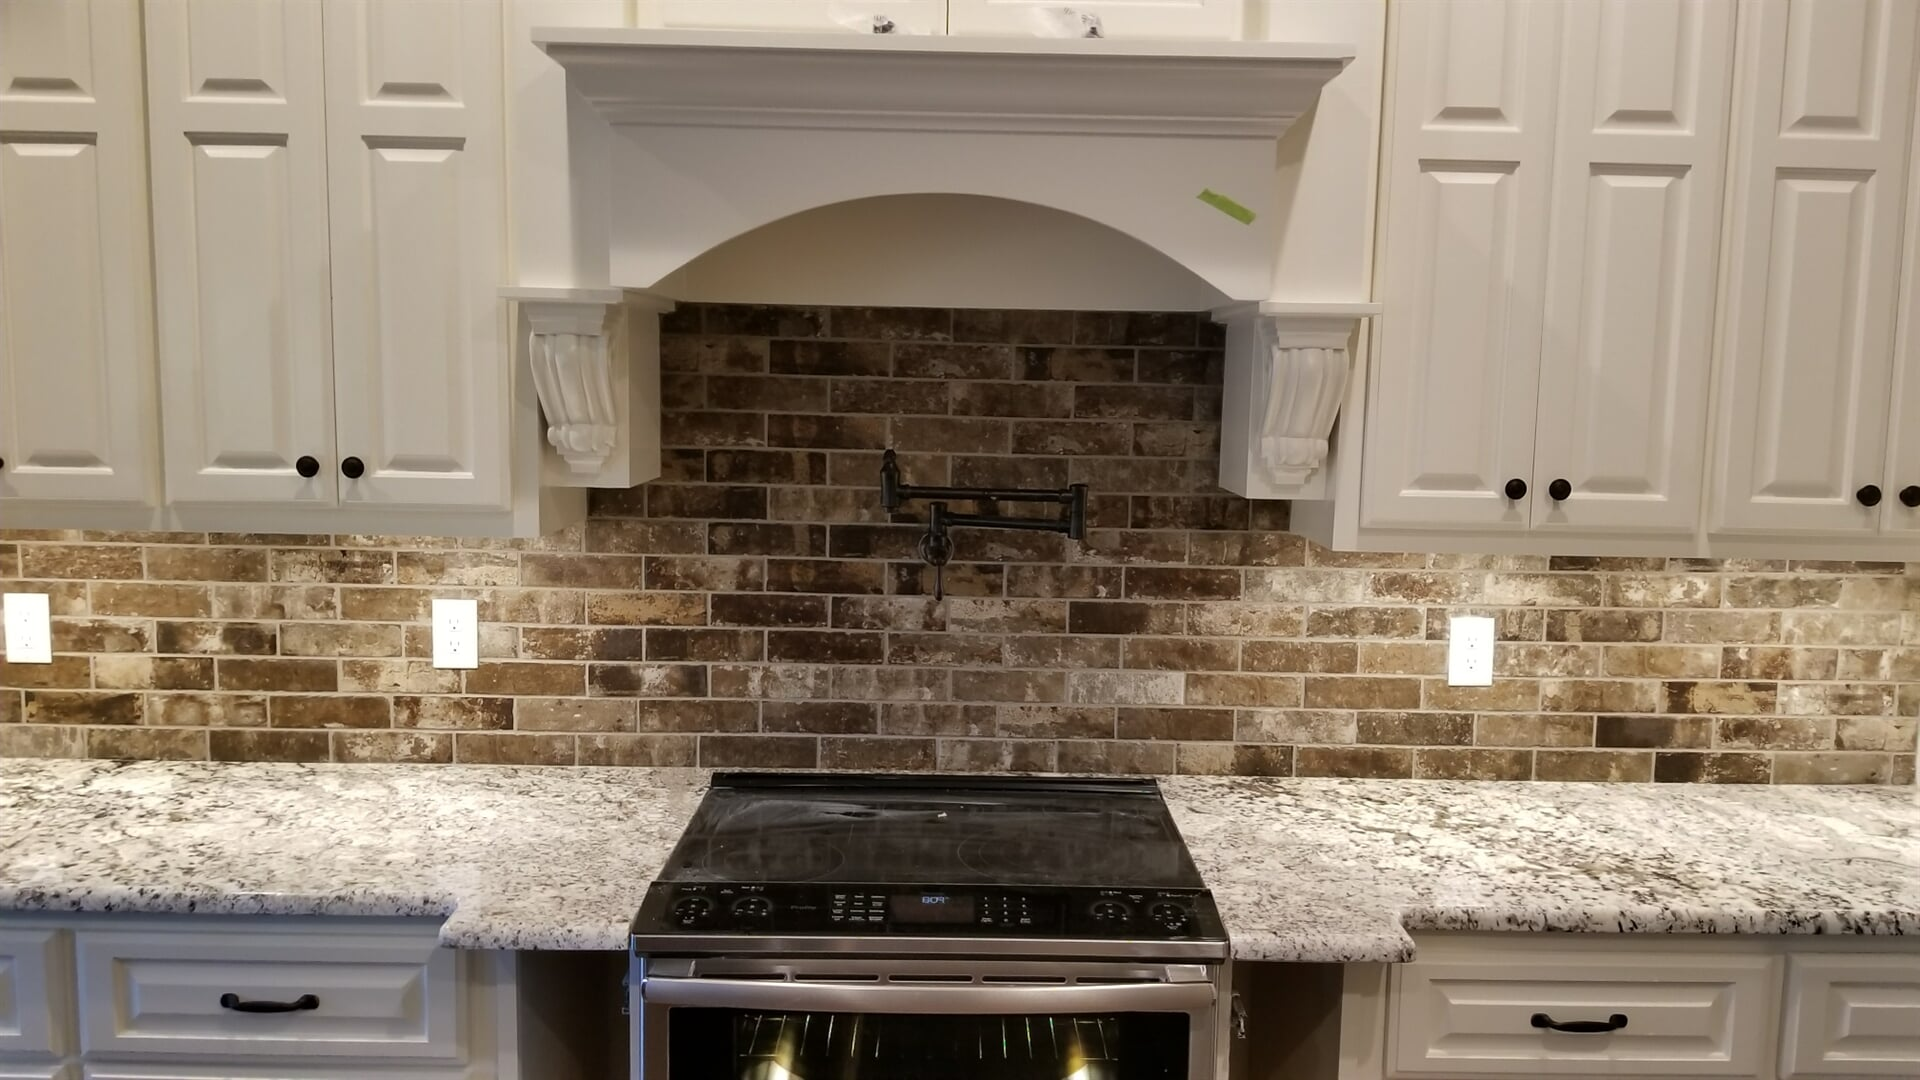 Kitchen backsplash from Roop's Carpet in Searcy, AR